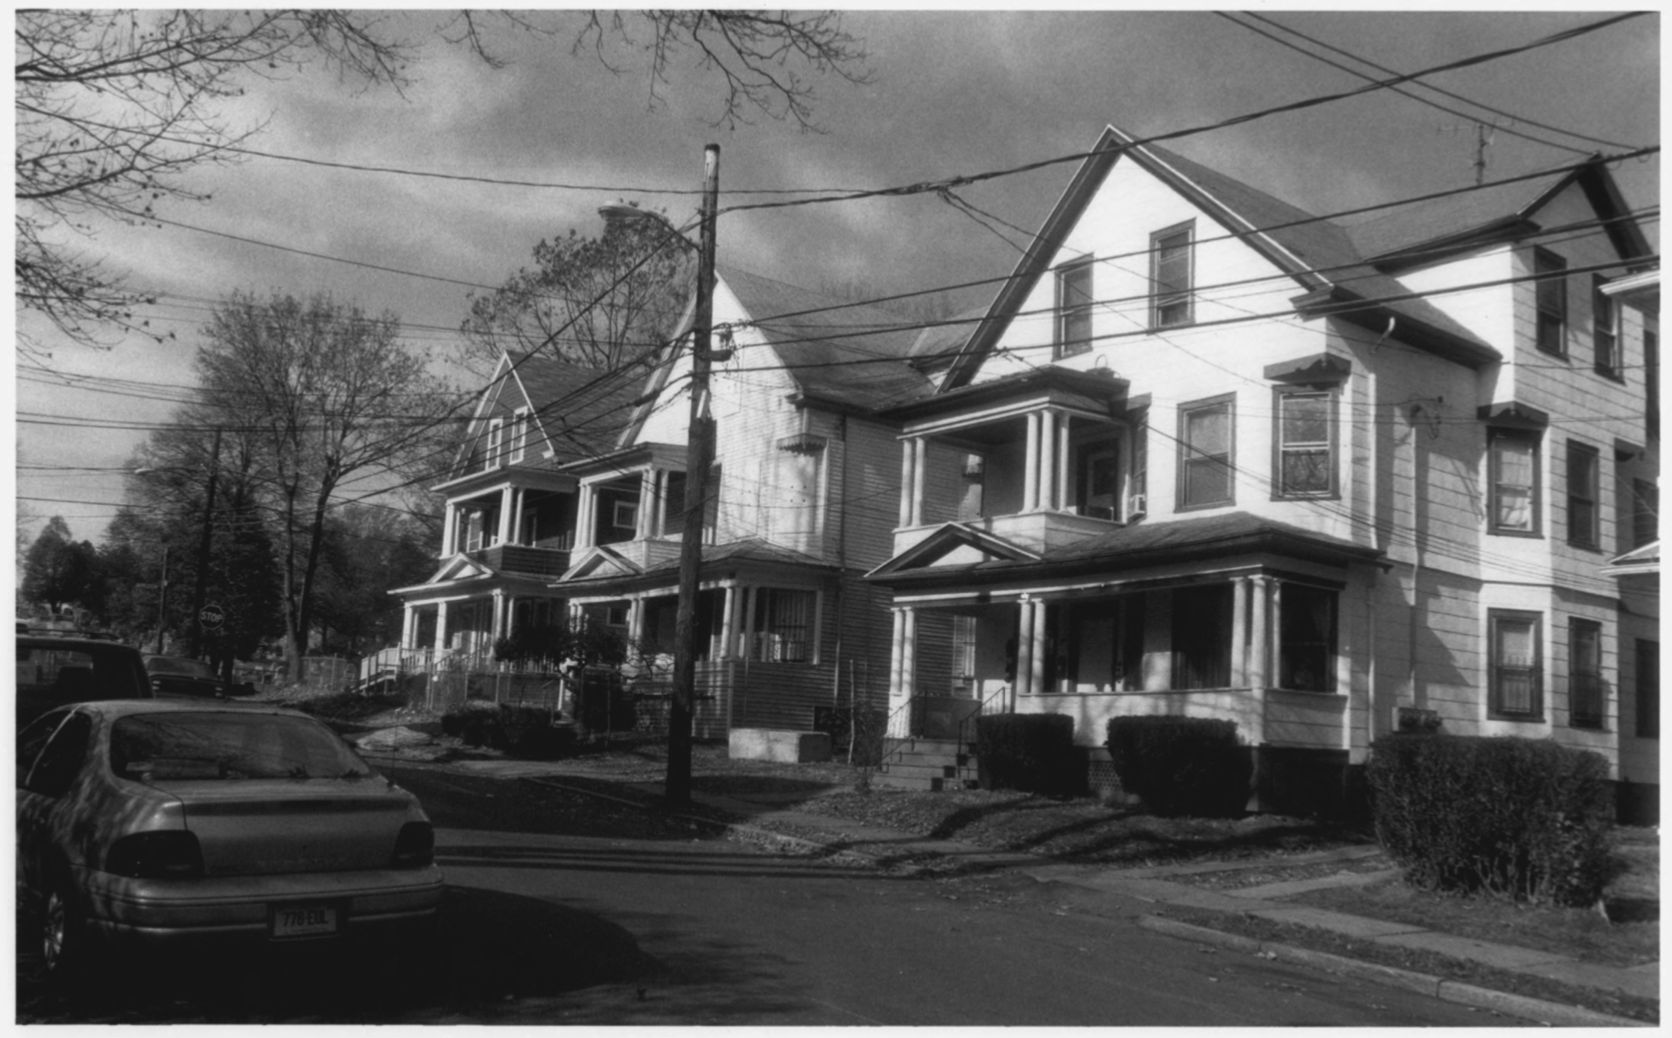 Allen Place - Lincoln Street Historic District Photo Record, Maintained by the NPS, Photo 5